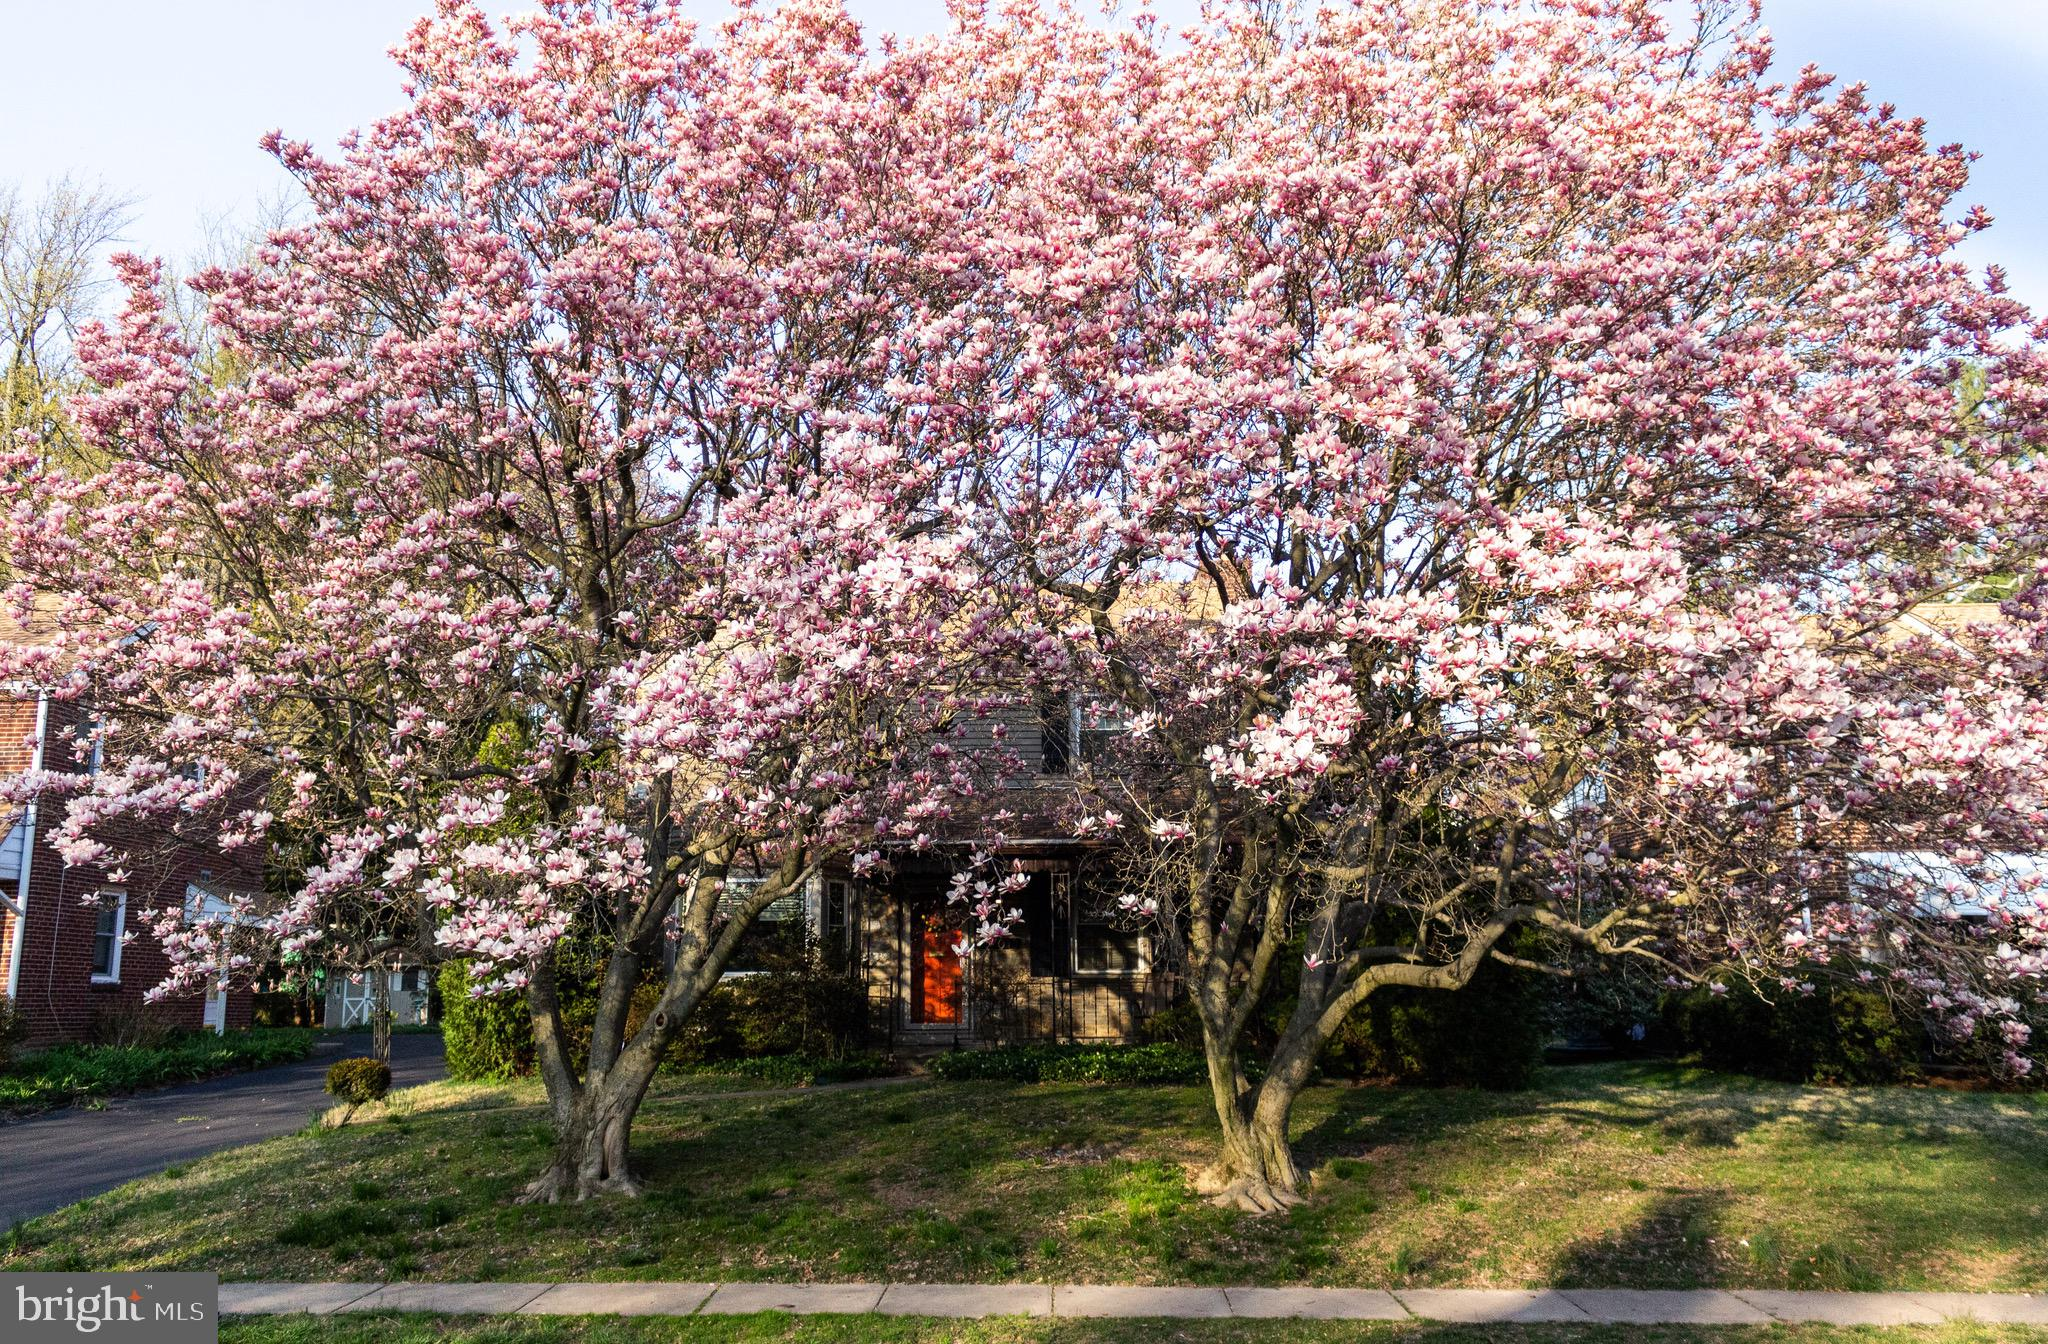 Welcome home to this beautiful Colonial in Lower Merion! Before entering you will see a large, covered stone patio perfect for sitting out and enjoying a cold beverage on a summer day. As you enter the house you will notice a spacious living room with beautiful hardwood floors and a fireplace that's perfect for entertaining. Continue through to the dining room and you will be struck by an abundance of natural light coming from the large bay windows. All windows in this home are new! Next, the kitchen is fully equipped with stainless steel appliances and a door to the driveway that is convenient for unloading groceries and access to the backyard. Outside you will find a large shared driveway (with quiet and very friendly neighbors), an attached garage, carport, and a flat yard great for summer gatherings! A wrought iron bannister and bright hardwood steps will lead you upstairs where you will find three spacious bedrooms and one and a half bathrooms. In addition, you have access to another outdoor patio space from one of the bedrooms. Downstairs you will find a finished basement, laundry, and plenty of space for storage! You will be in coveted Lower Merion school district, minutes from South Ardmore Park, Whole Foods, Bryn Mawr restaurants and plenty more! Don't miss out on your opportunity to become the next owner of this lovely home!